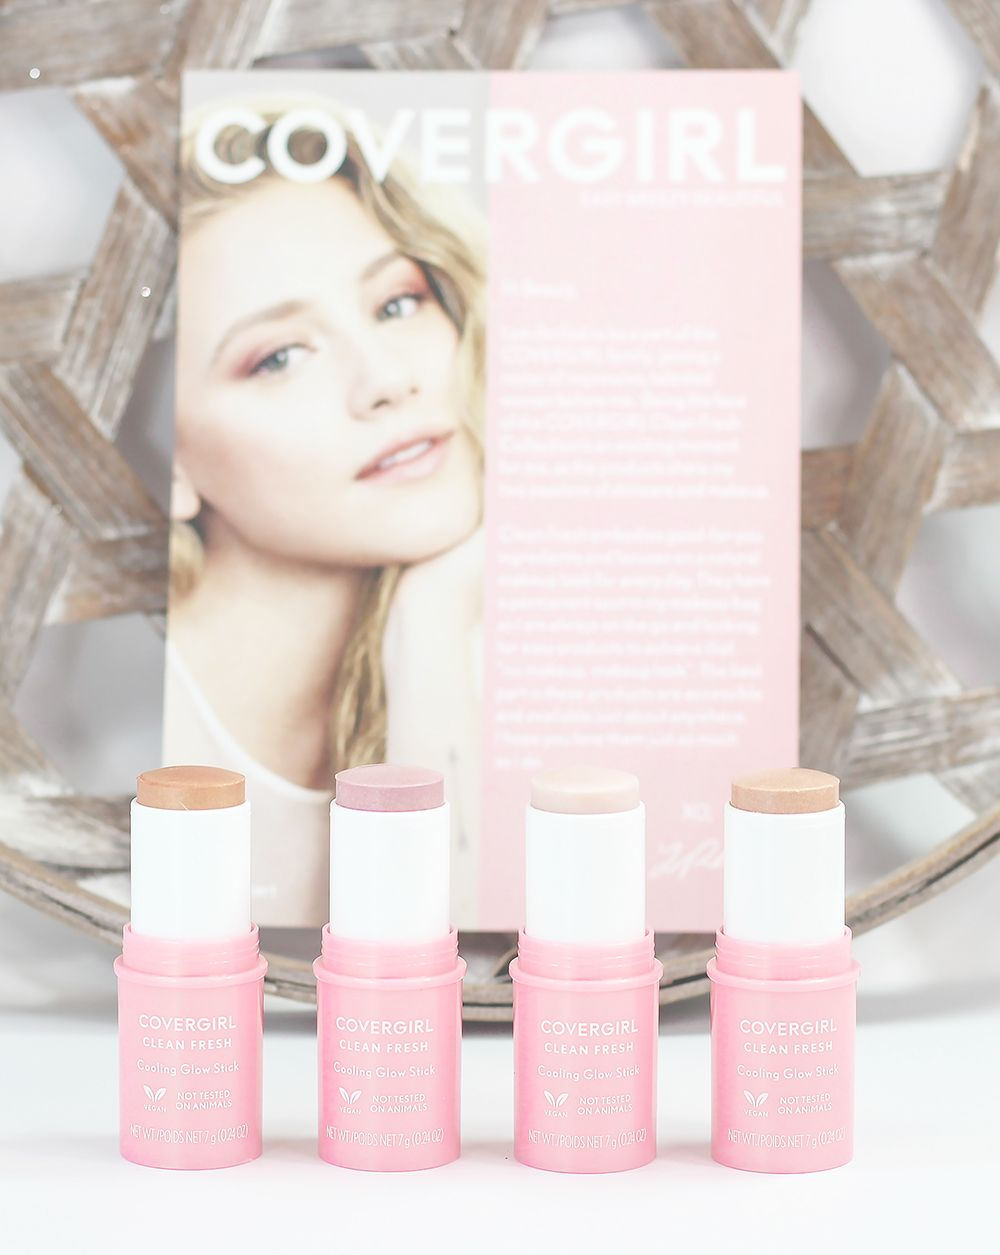 Covergirl Clean Fresh Vegan Makeup Collection Review Swatches In